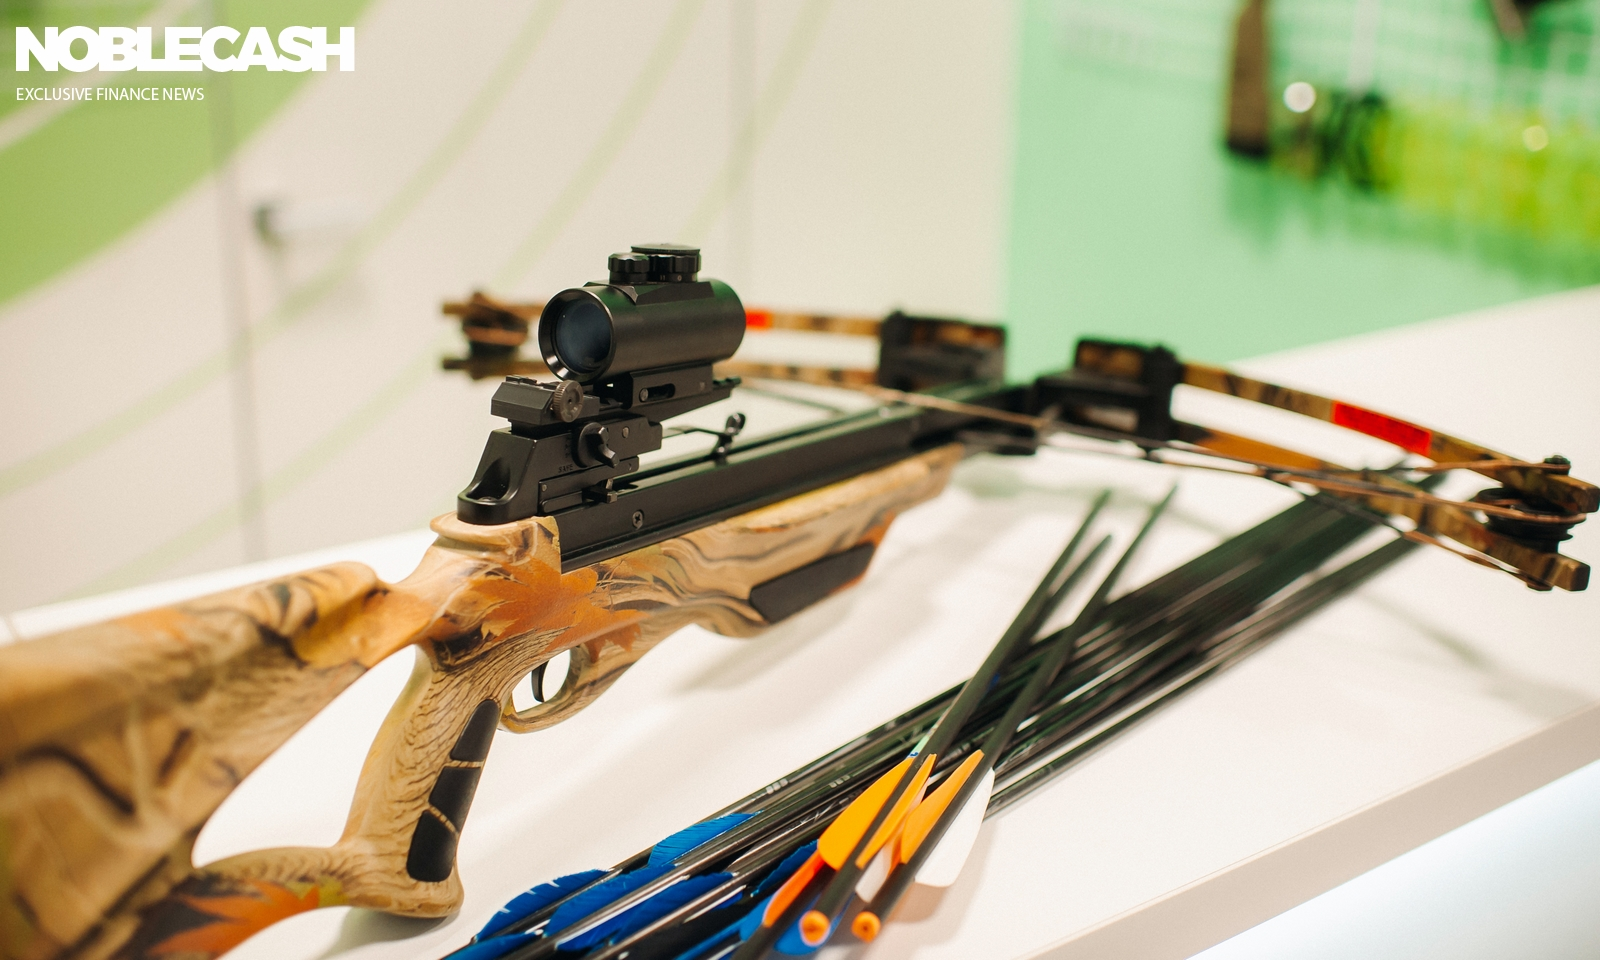 crossbow with arrows for shooting at a shooting range.Weapons for shooting at a shooting range.